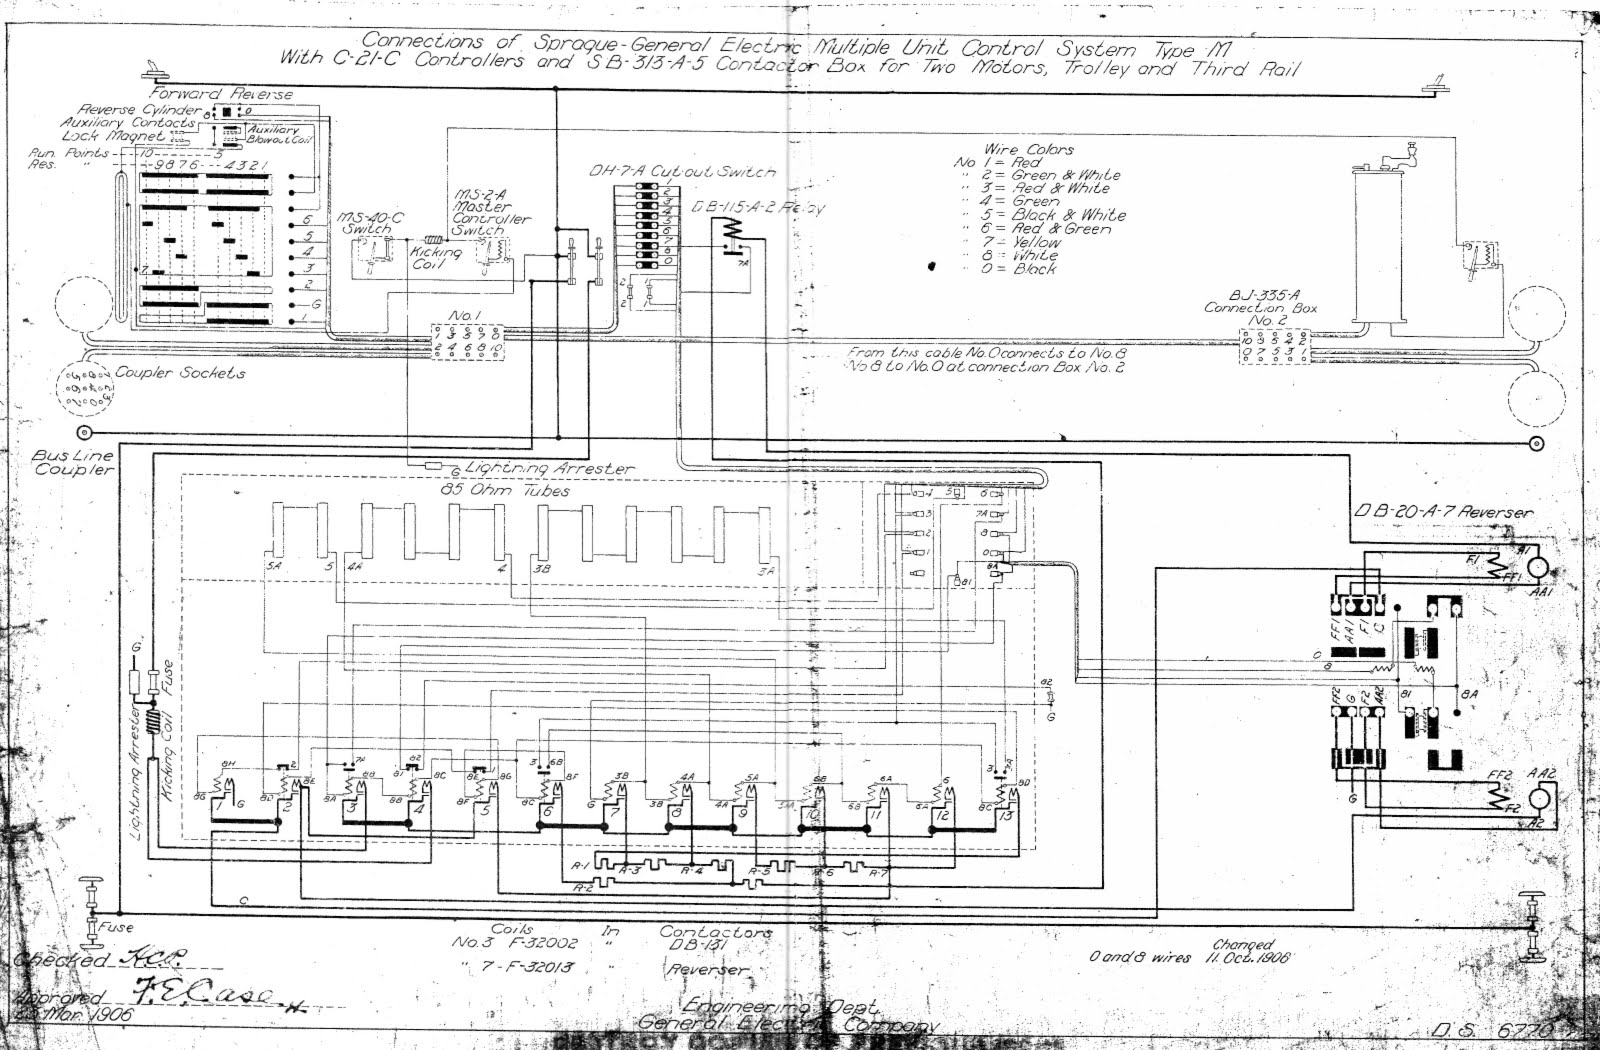 wiring diagram 1988 yamaha tw200 repair machine Yamaha TW200 Exhaust